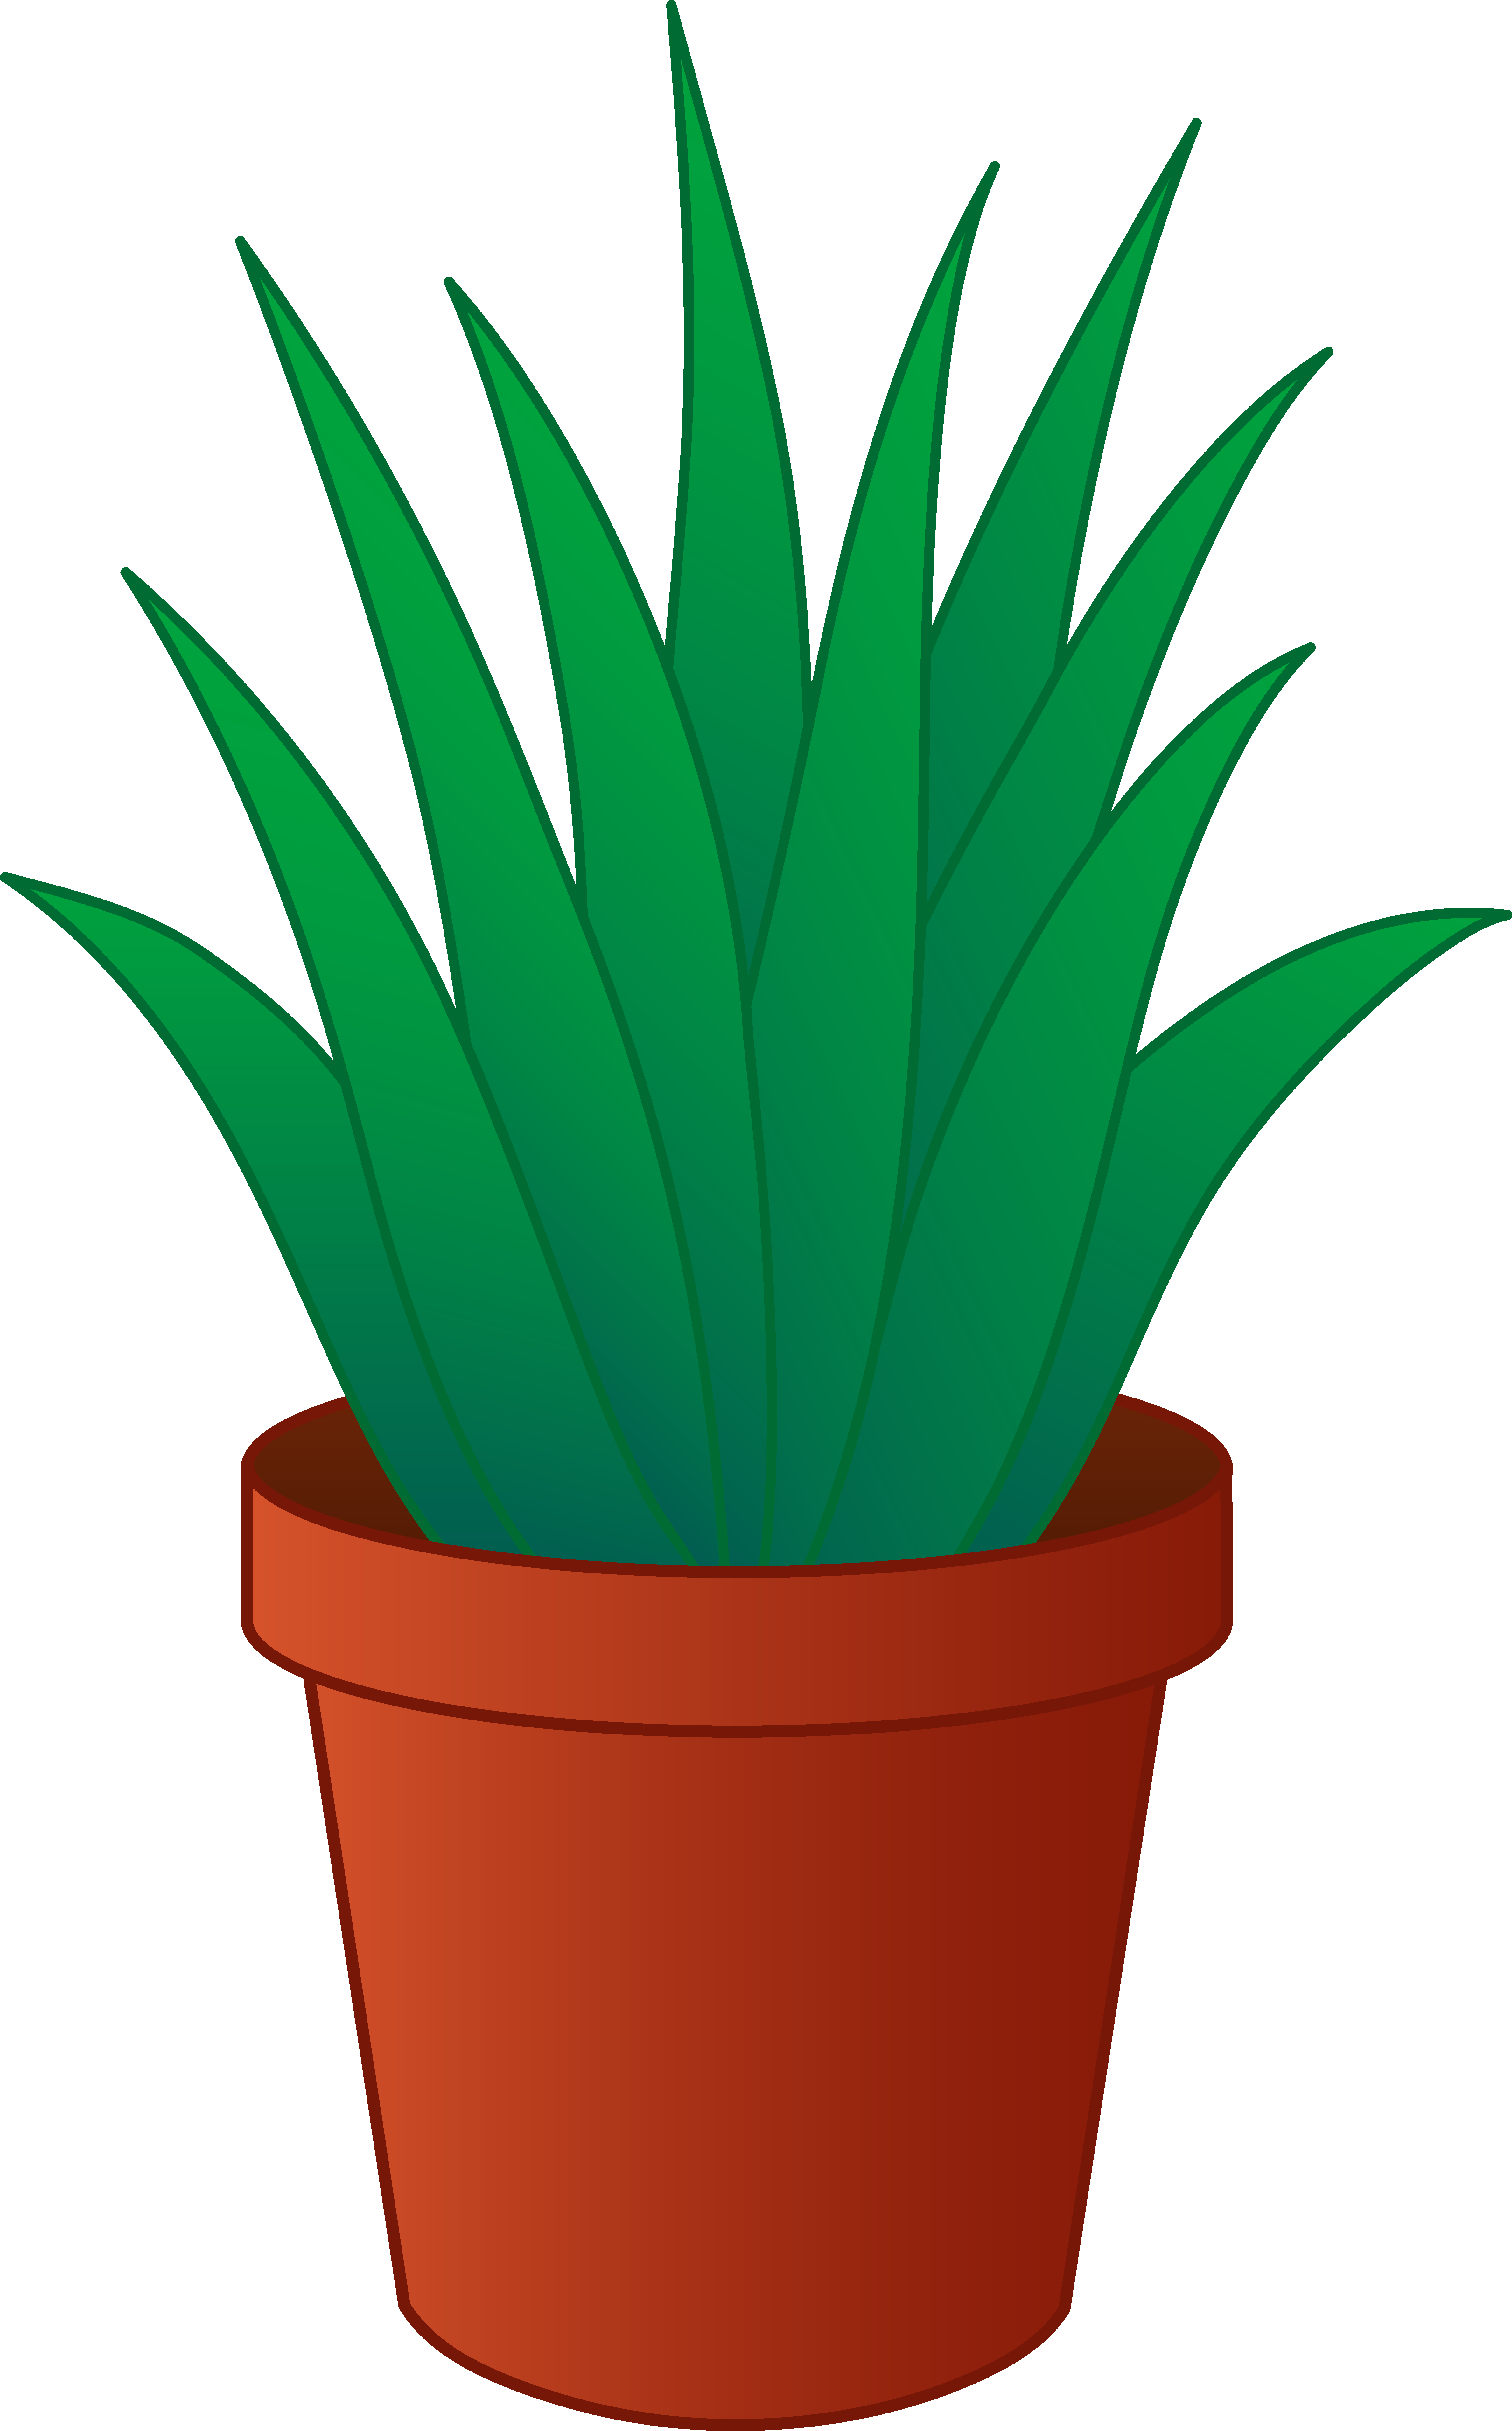 . Plants clipart potted plant